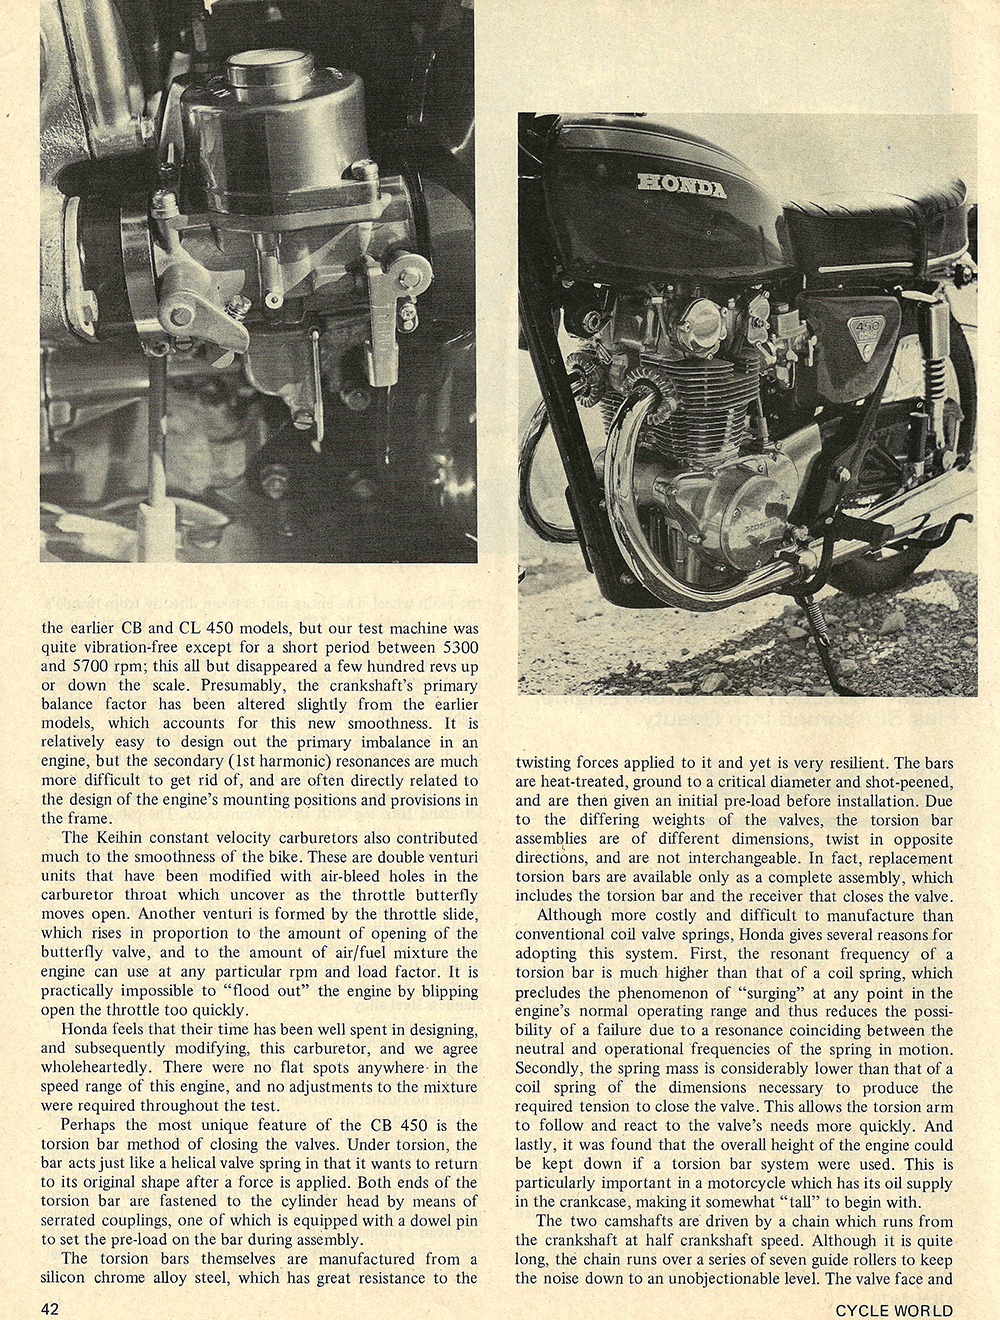 1970 Honda CB450 road test 02.jpg